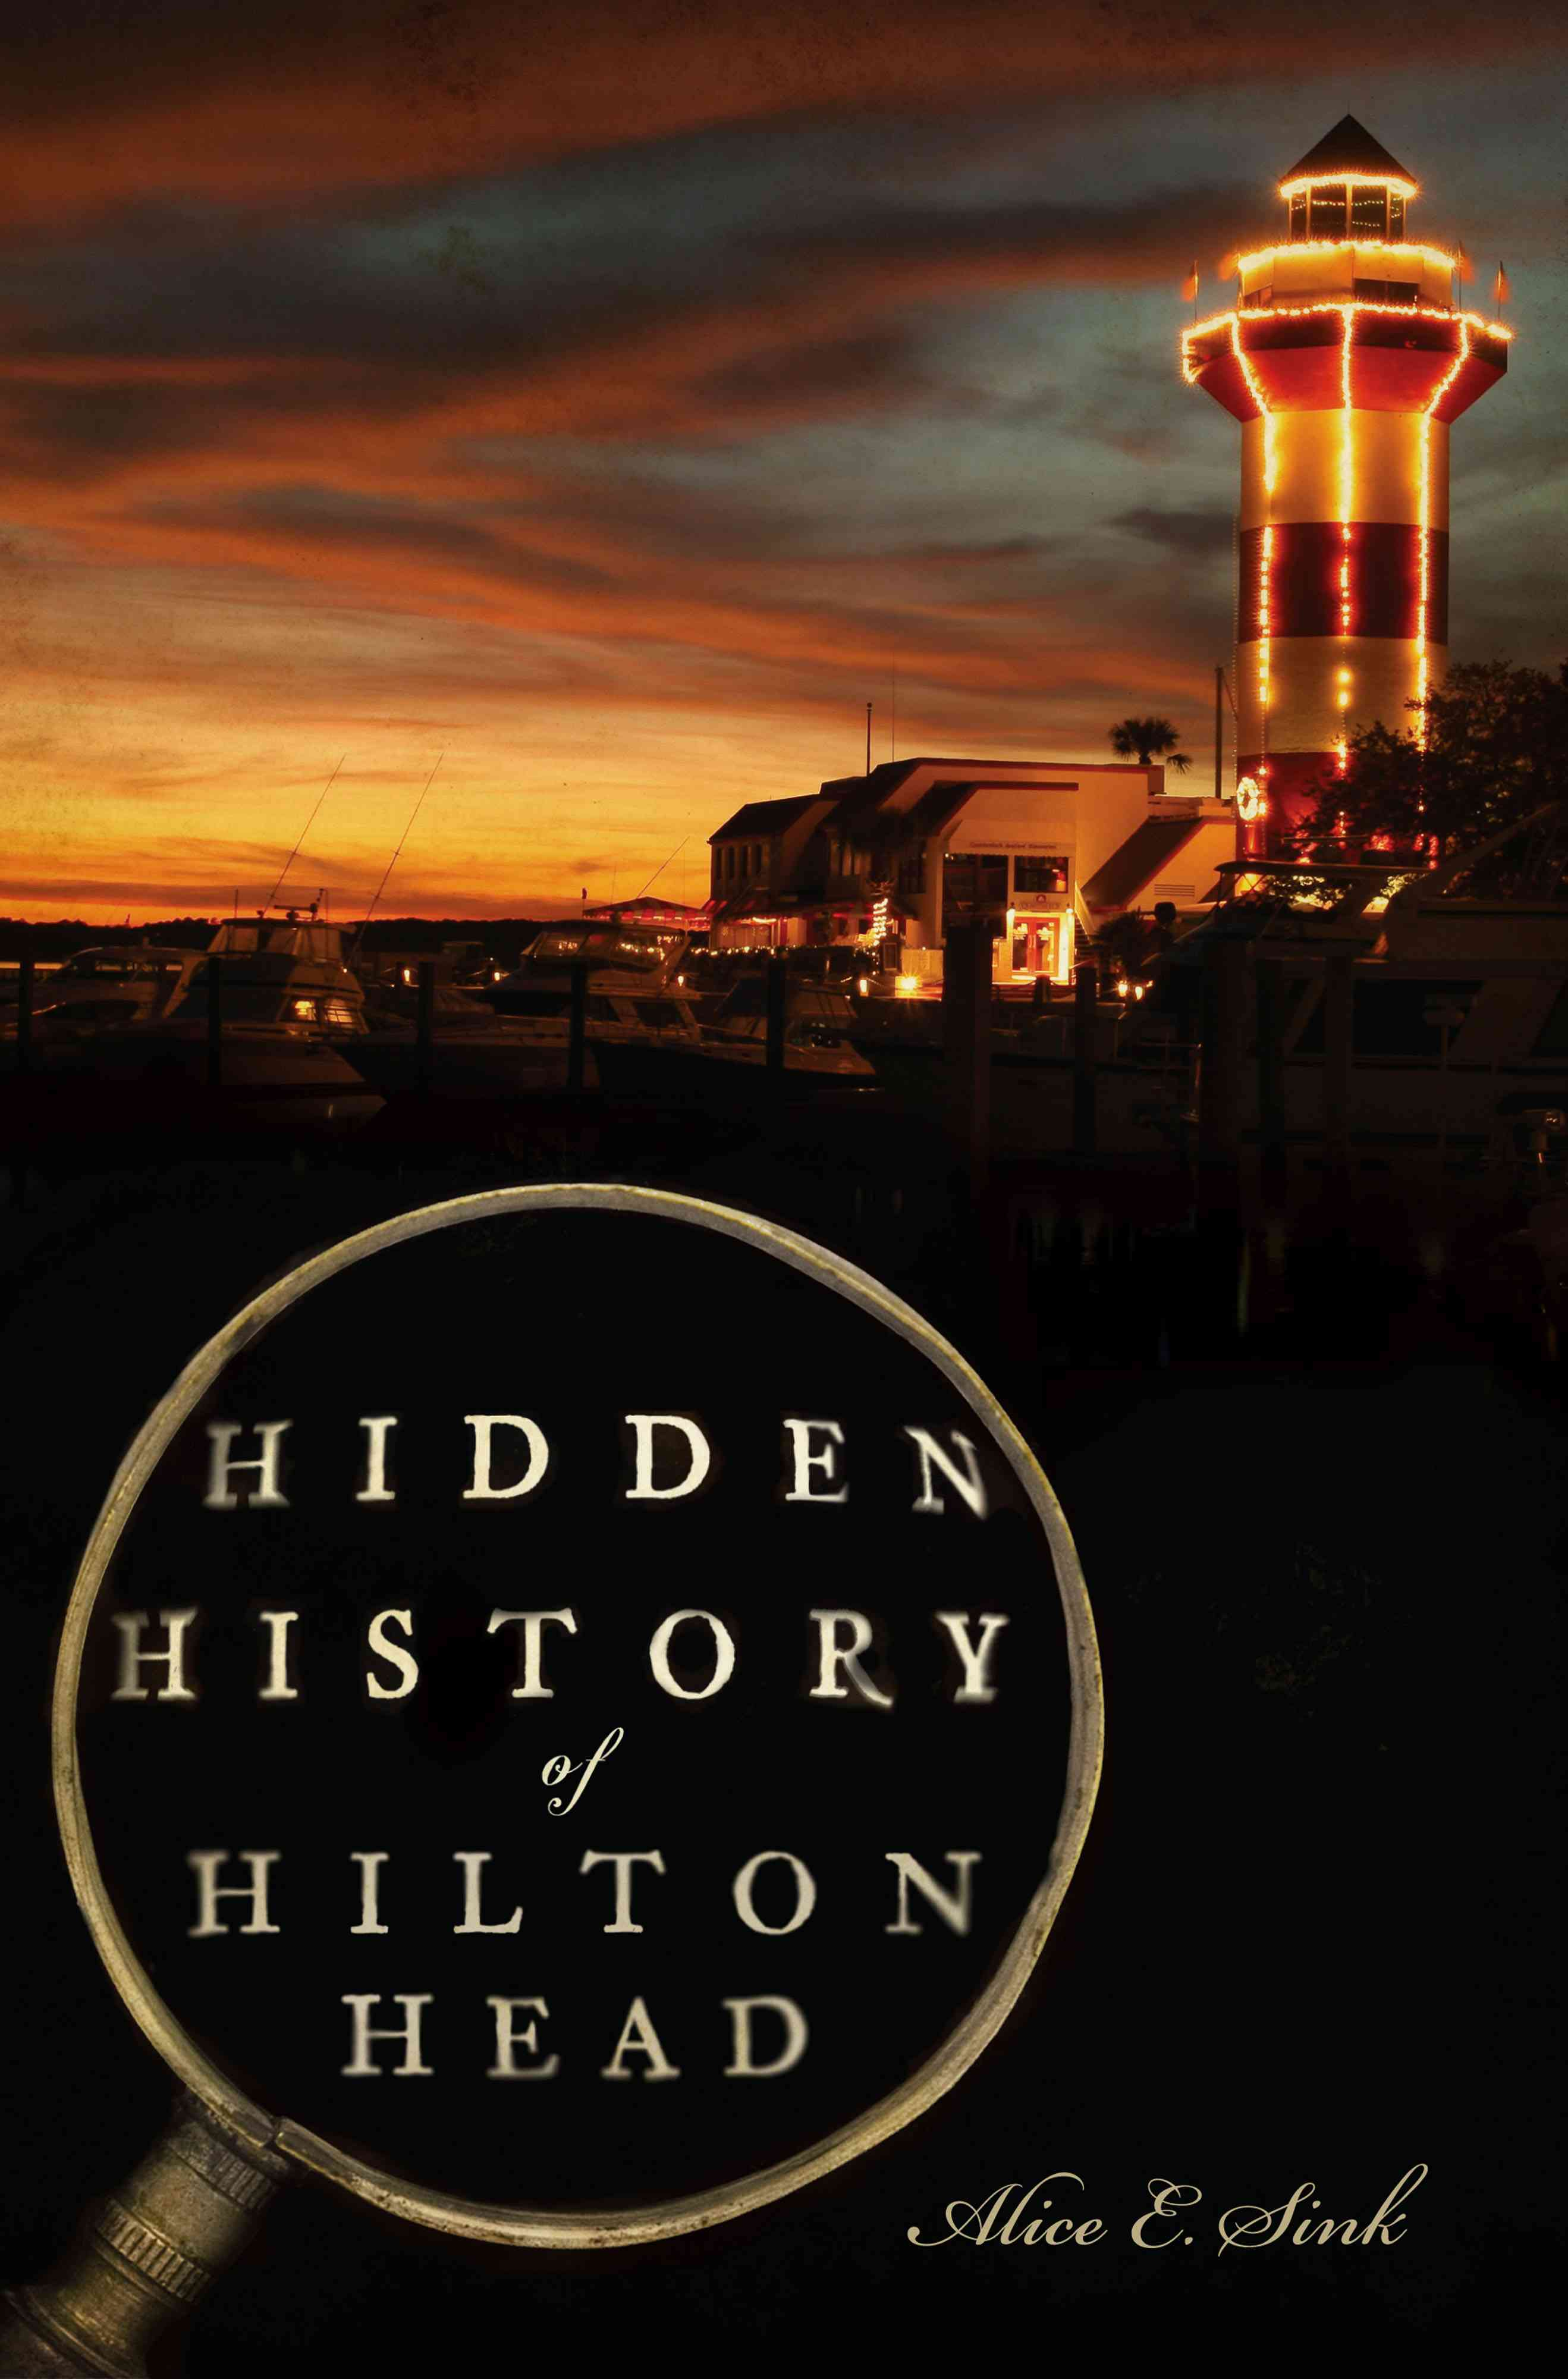 Hidden History of Hilton Head By Sink, Alice E.